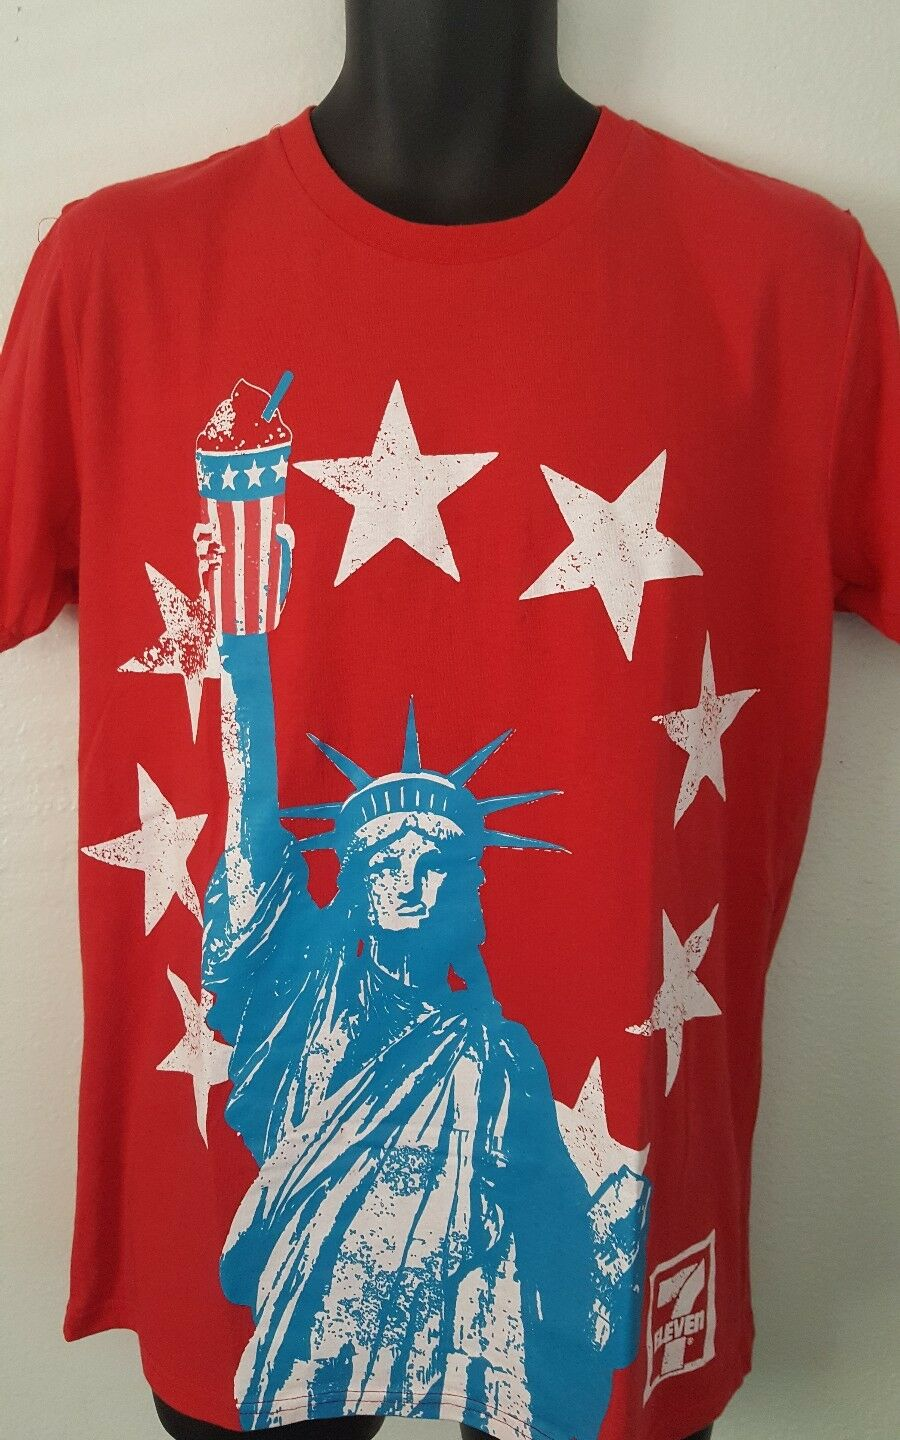 7-11 Slurpee Memorial Day 4th of July T Shirt Large Statue of Liberty America E2